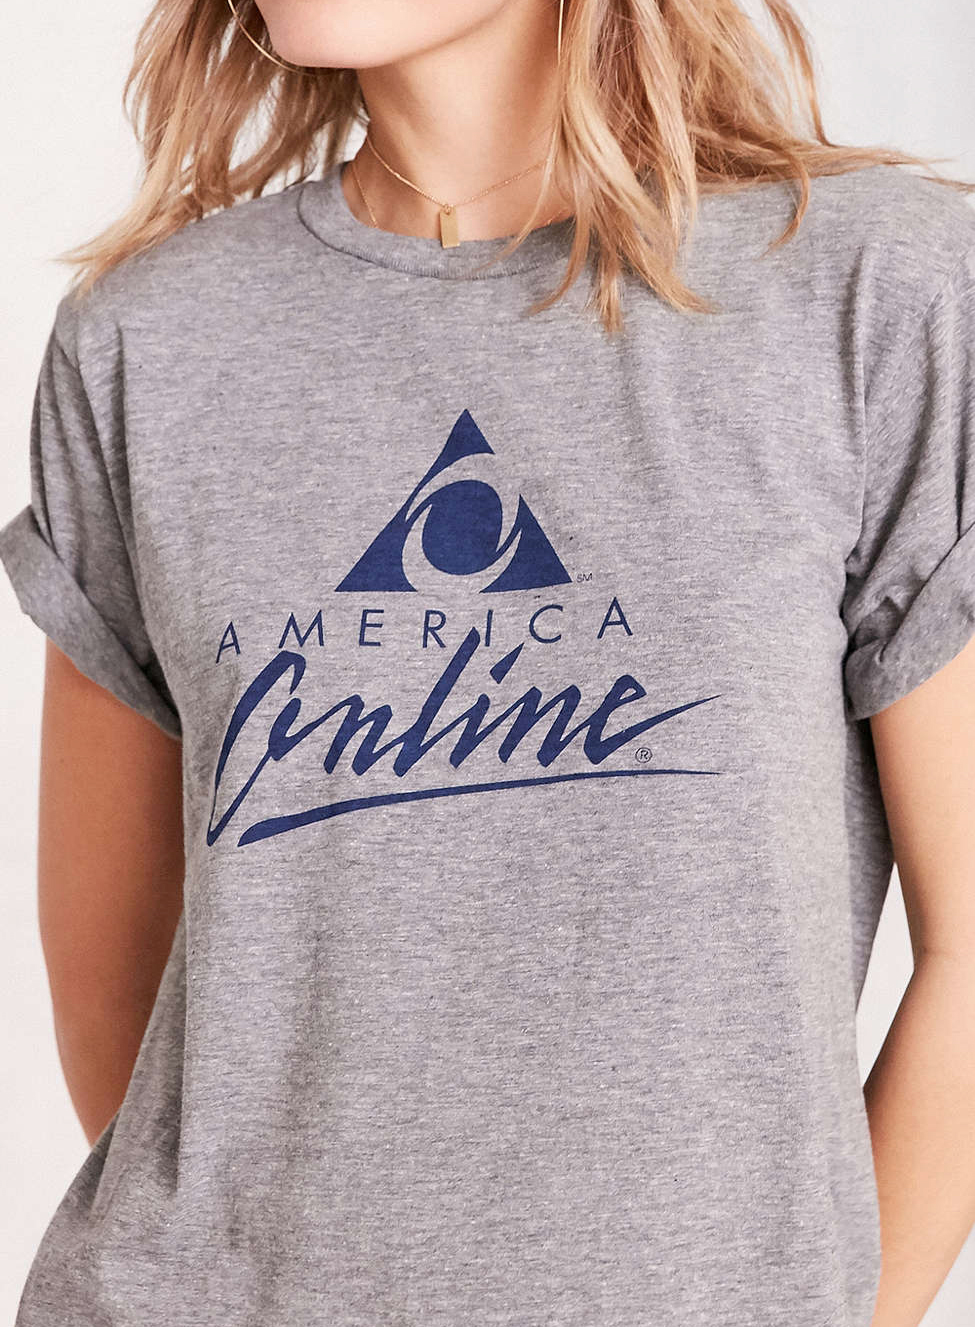 You Won't Believe How Much Urban Outfitters Is Charging for an AOL T-Shirt